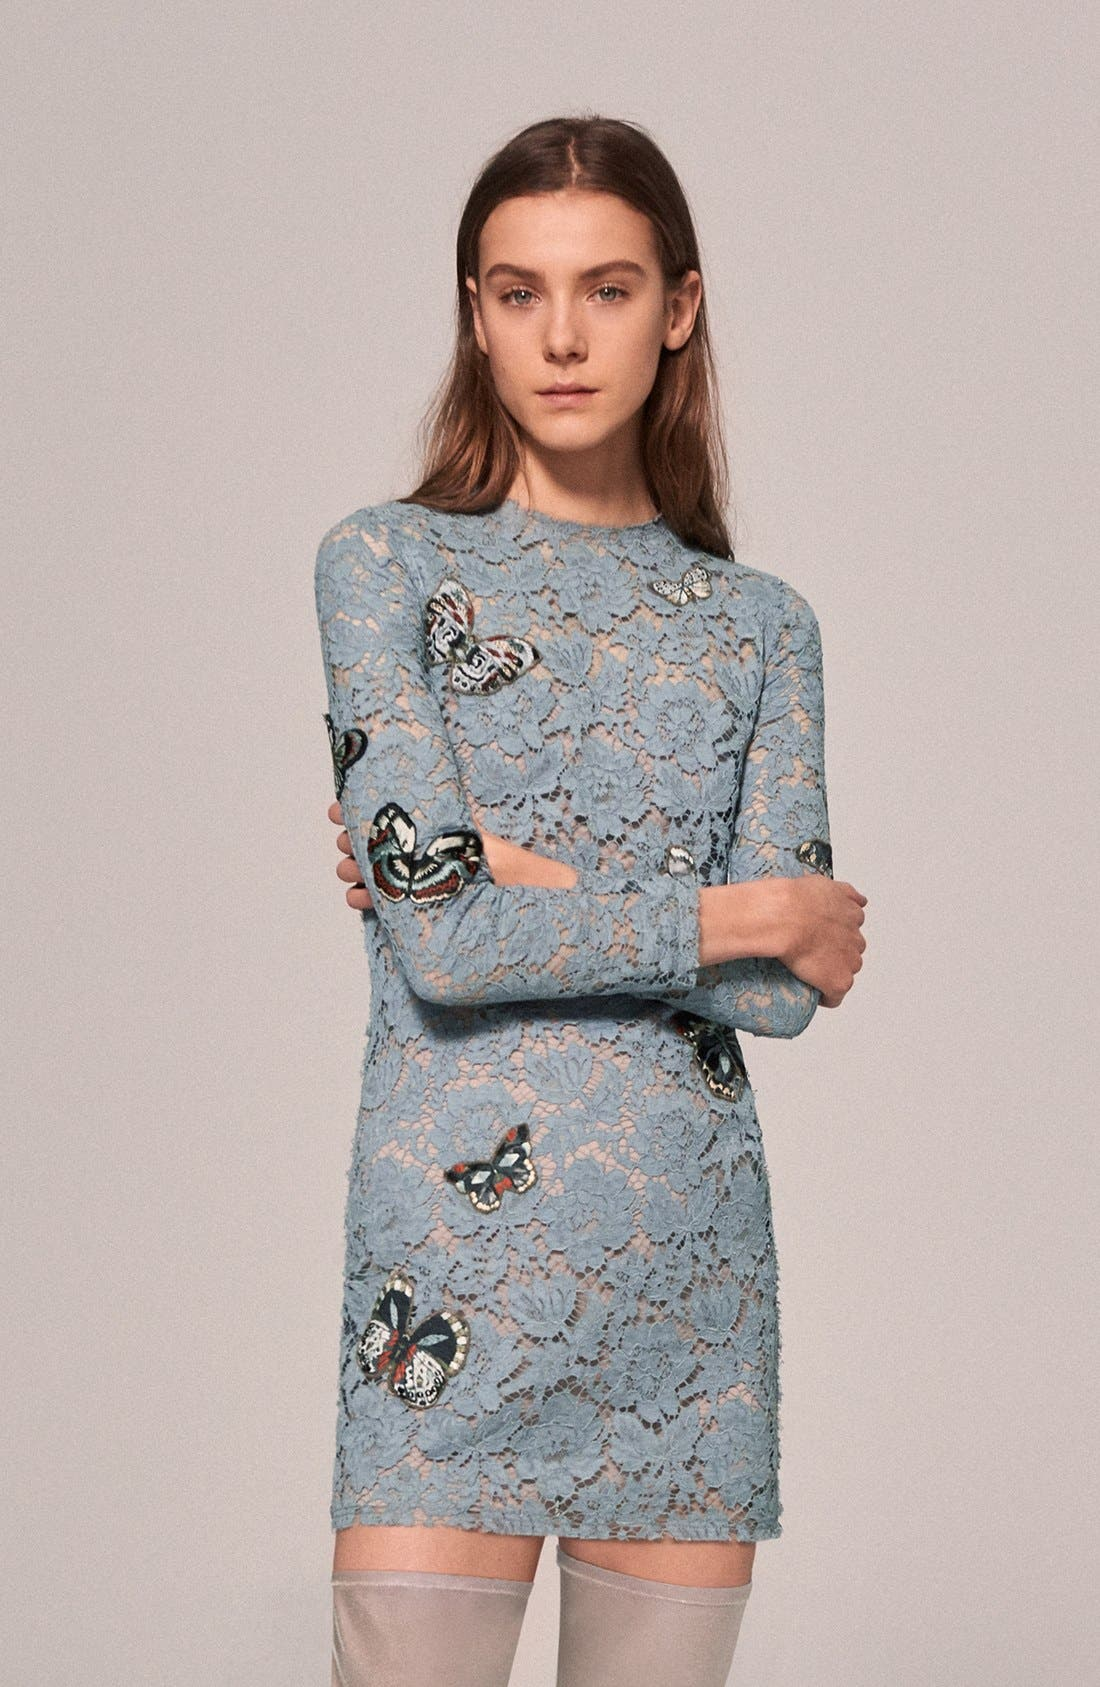 Butterfly Embroidered Lace Dress,                             Alternate thumbnail 7, color,